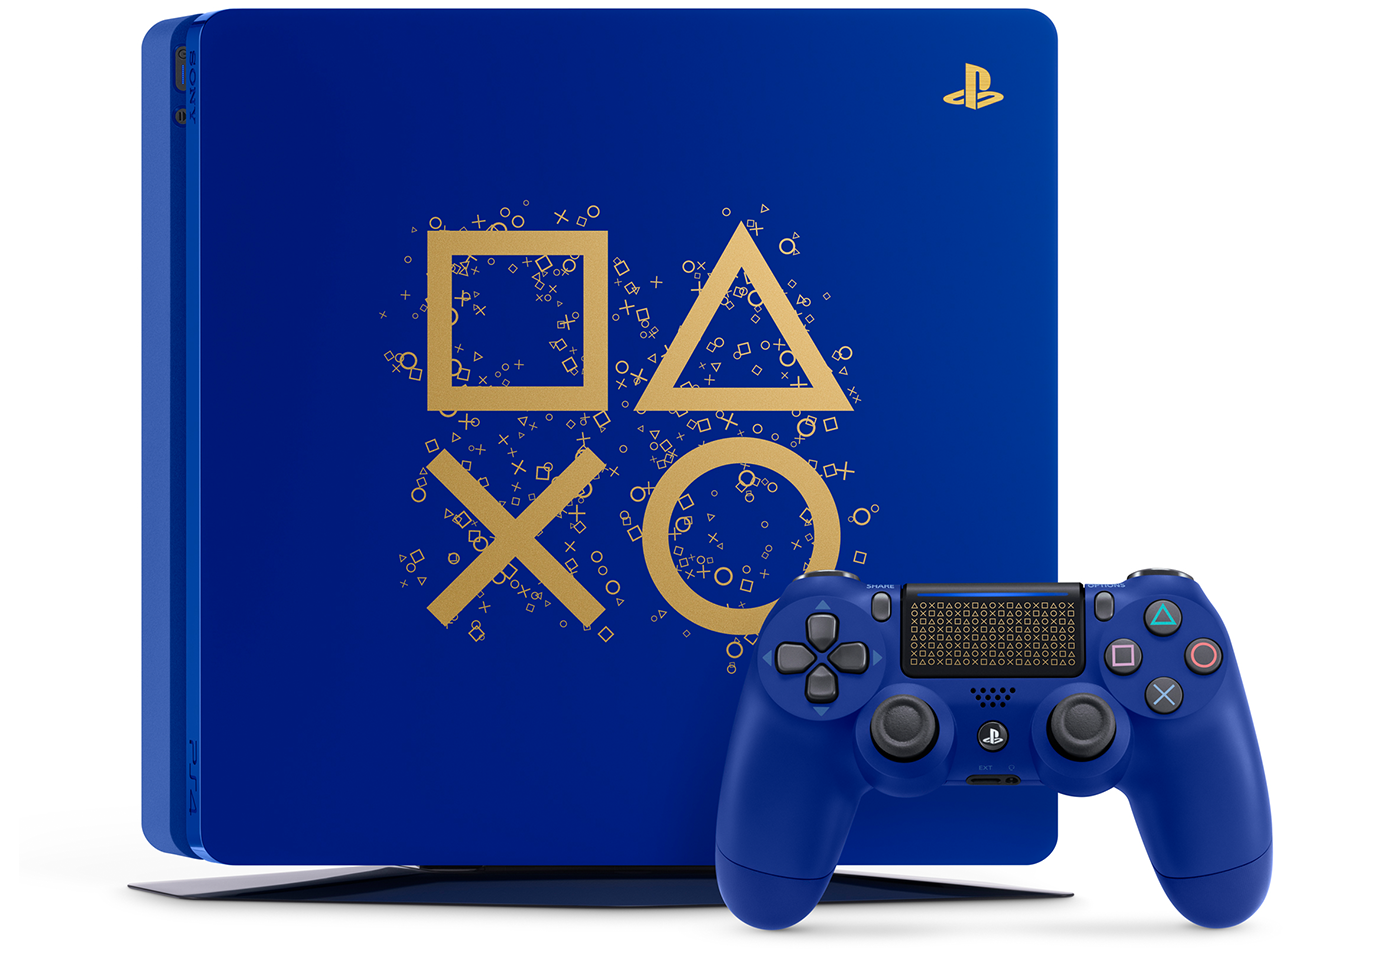 PlayStation, PlayStation 4, Sony PlayStation 4 Slim, Video Game Consoles, , , Sony, Gran Turismo Sport, Video game, PlayStation Vita, rewards passes sony, blue, product, cobalt blue, game controller, home game console accessory, technology, electric blue, video game accessory, portable game console accessory, electronics, PlayStation Store, PlayStation App